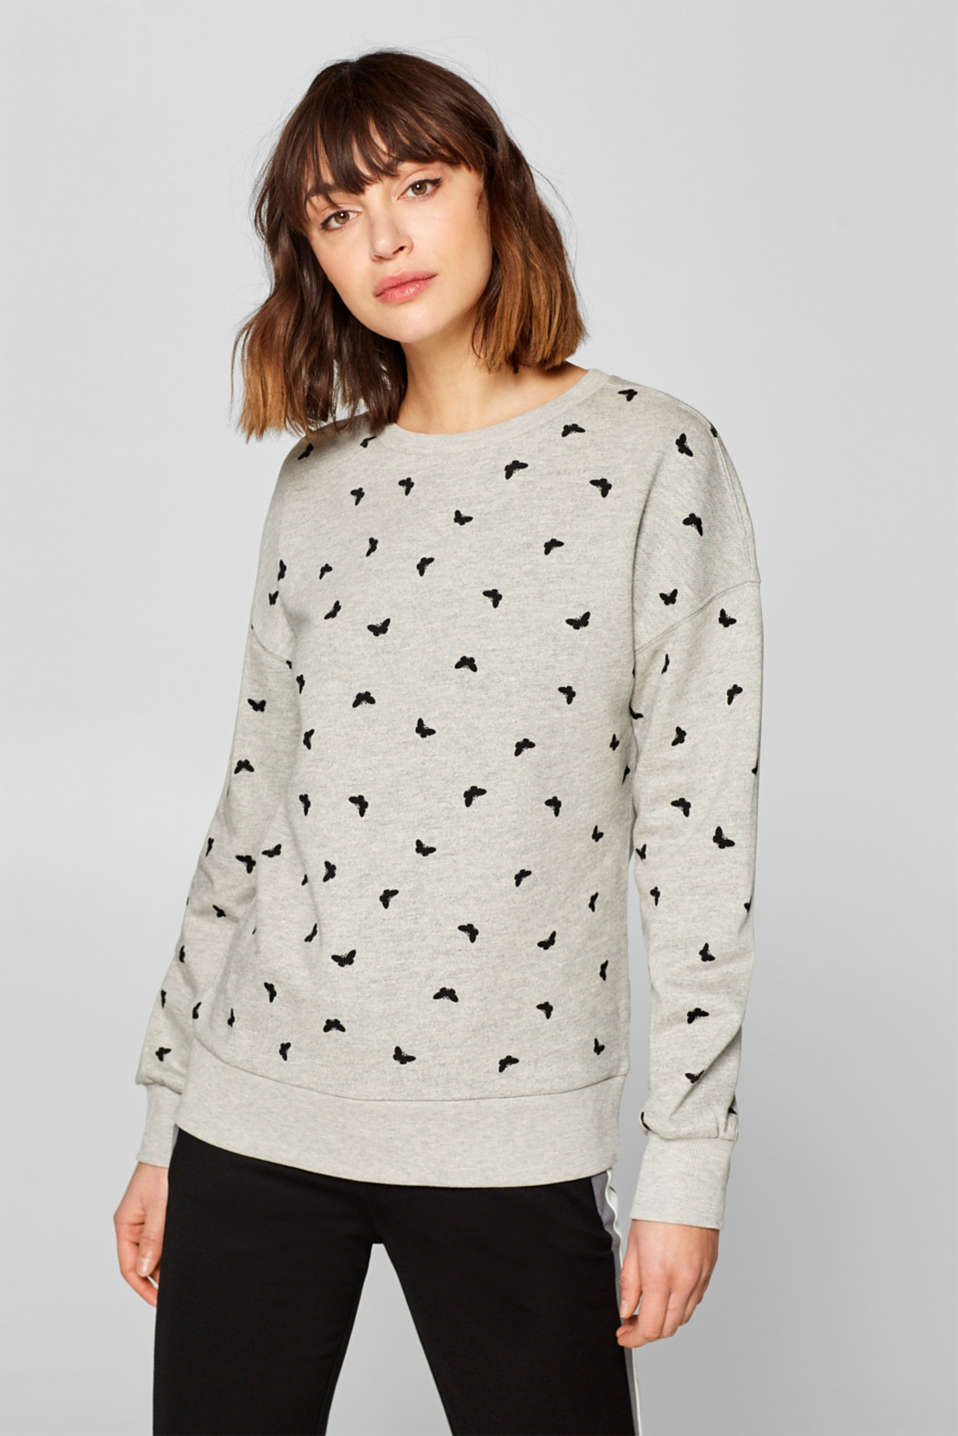 Esprit - Printed sweatshirt with a soft interior